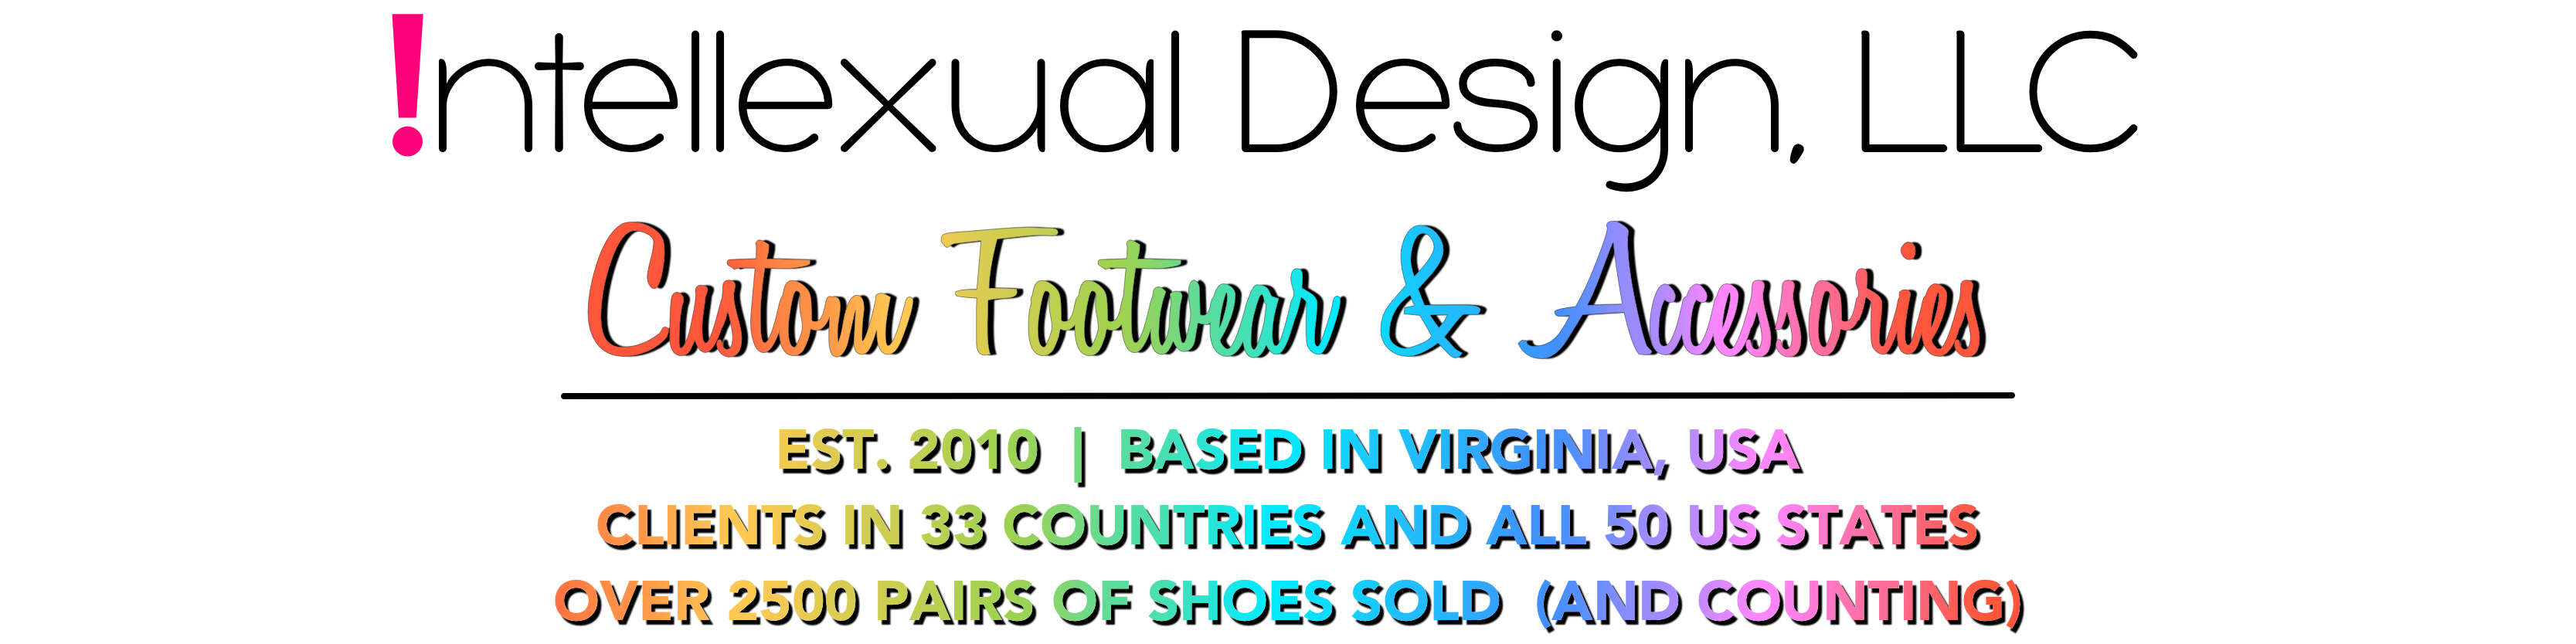 Intellexual Design, LLC Custom Footwear Apparel & Accessories